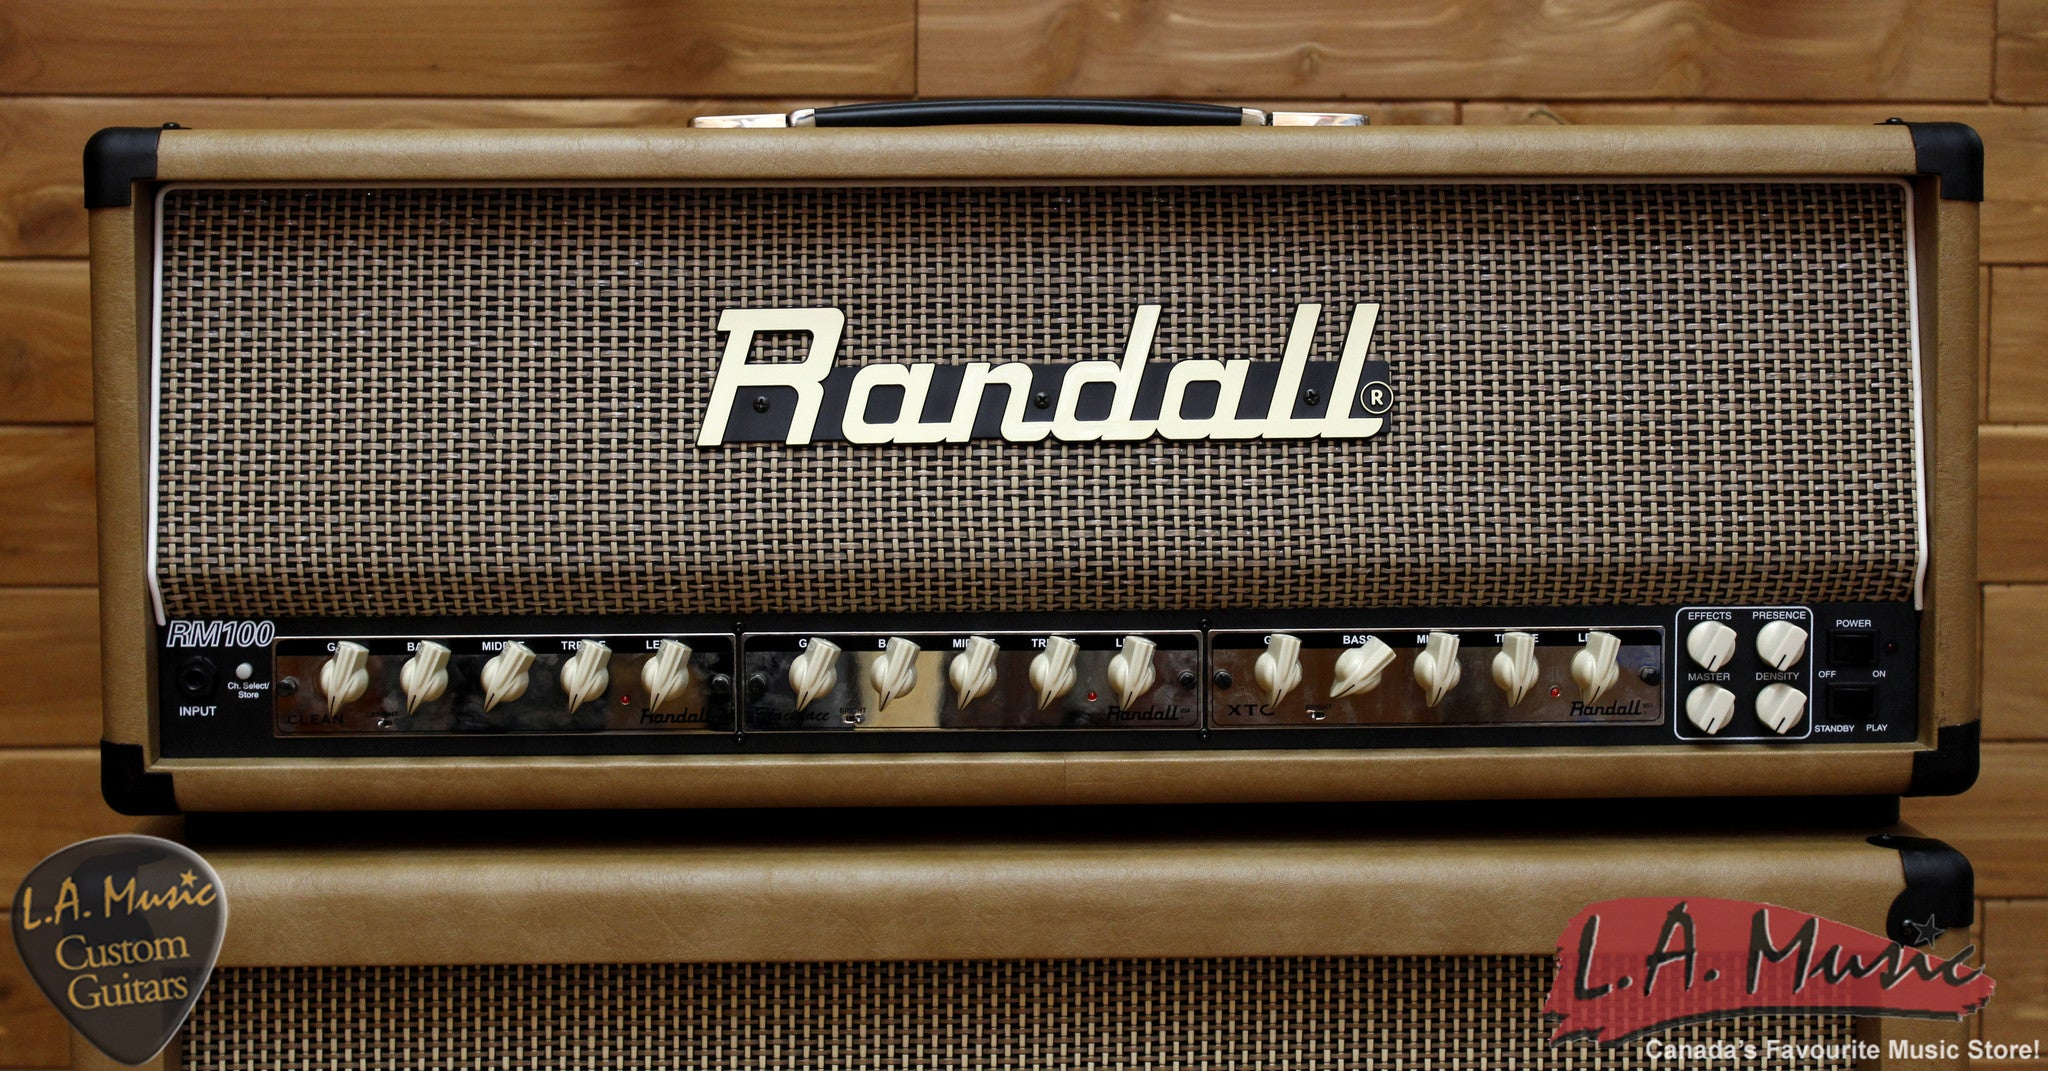 randall mts series rm100p2 100w guitar amp head with modules 4x12 ma l a music canada 39 s. Black Bedroom Furniture Sets. Home Design Ideas